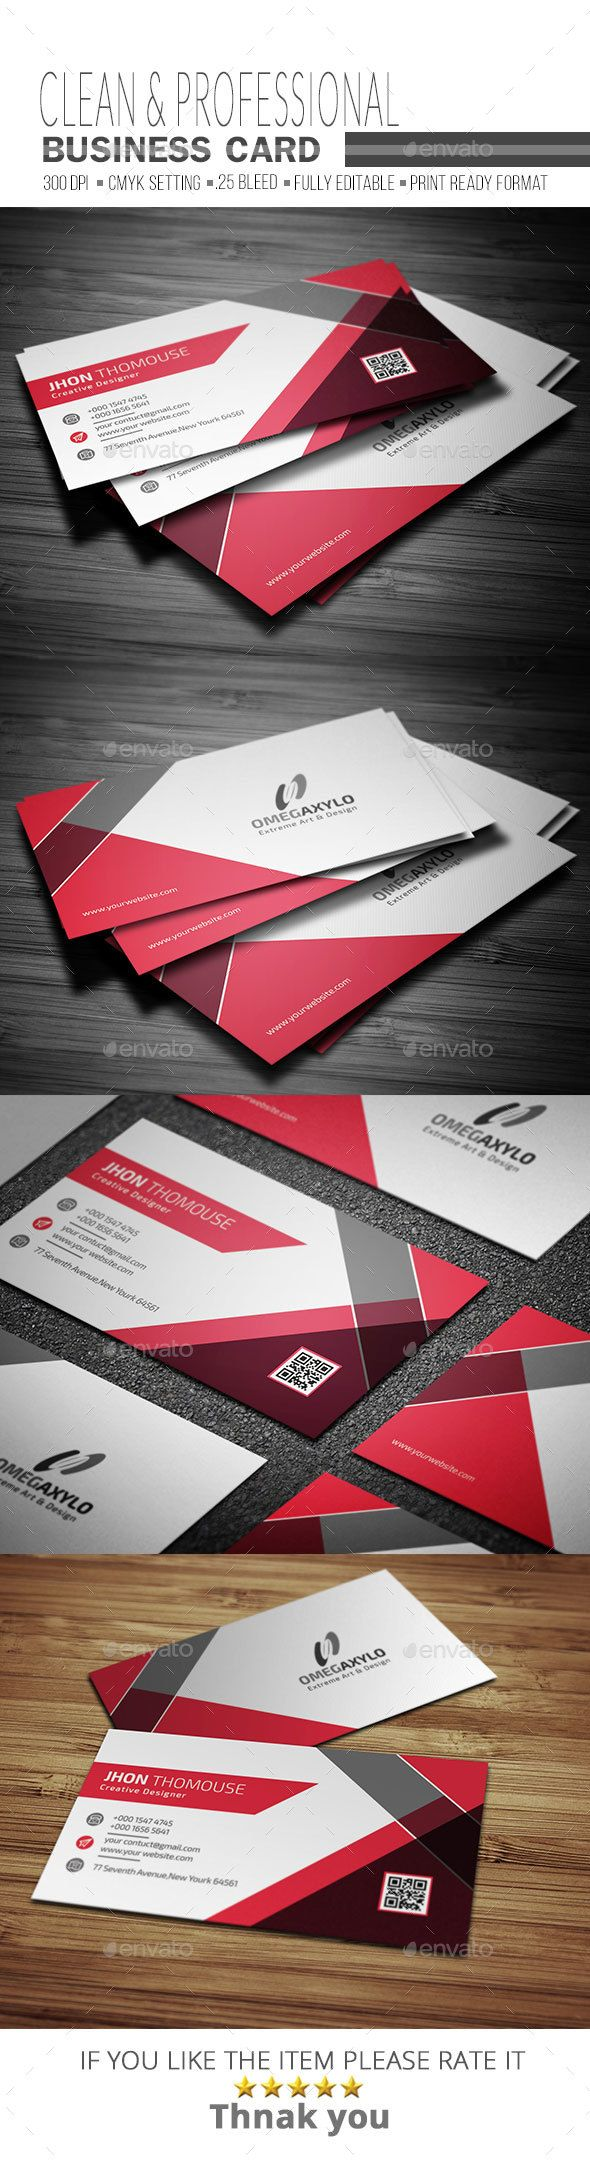 Corporate Business Card Template PSD. Download here: https://graphicriver.net/item/corporate-business-card/17490877?ref=ksioks